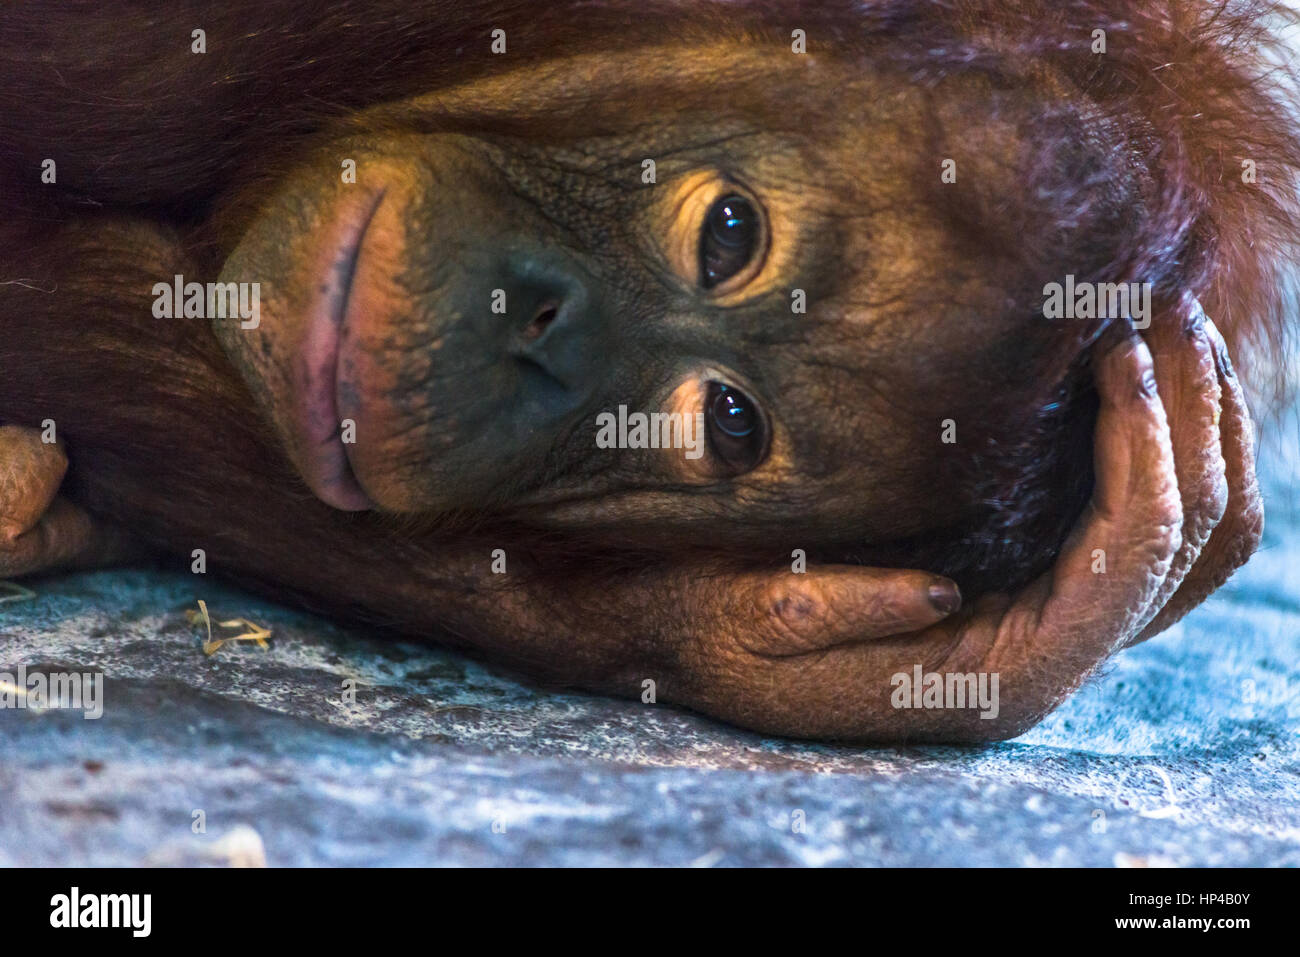 Triste Orangutang close up Immagini Stock